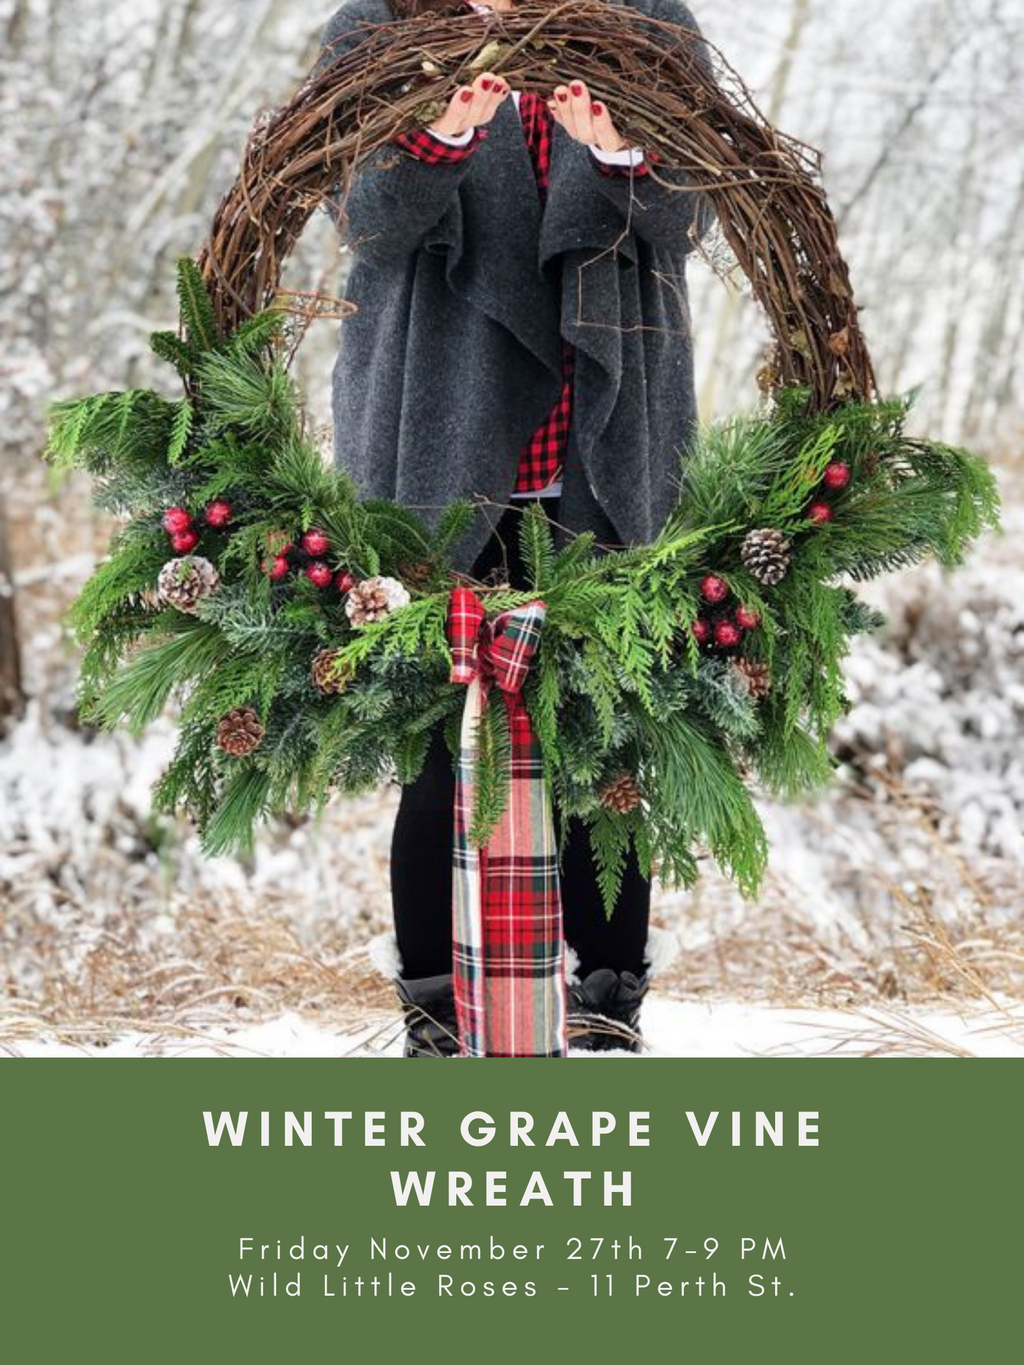 Winter Grape Vine Wreath Workshop